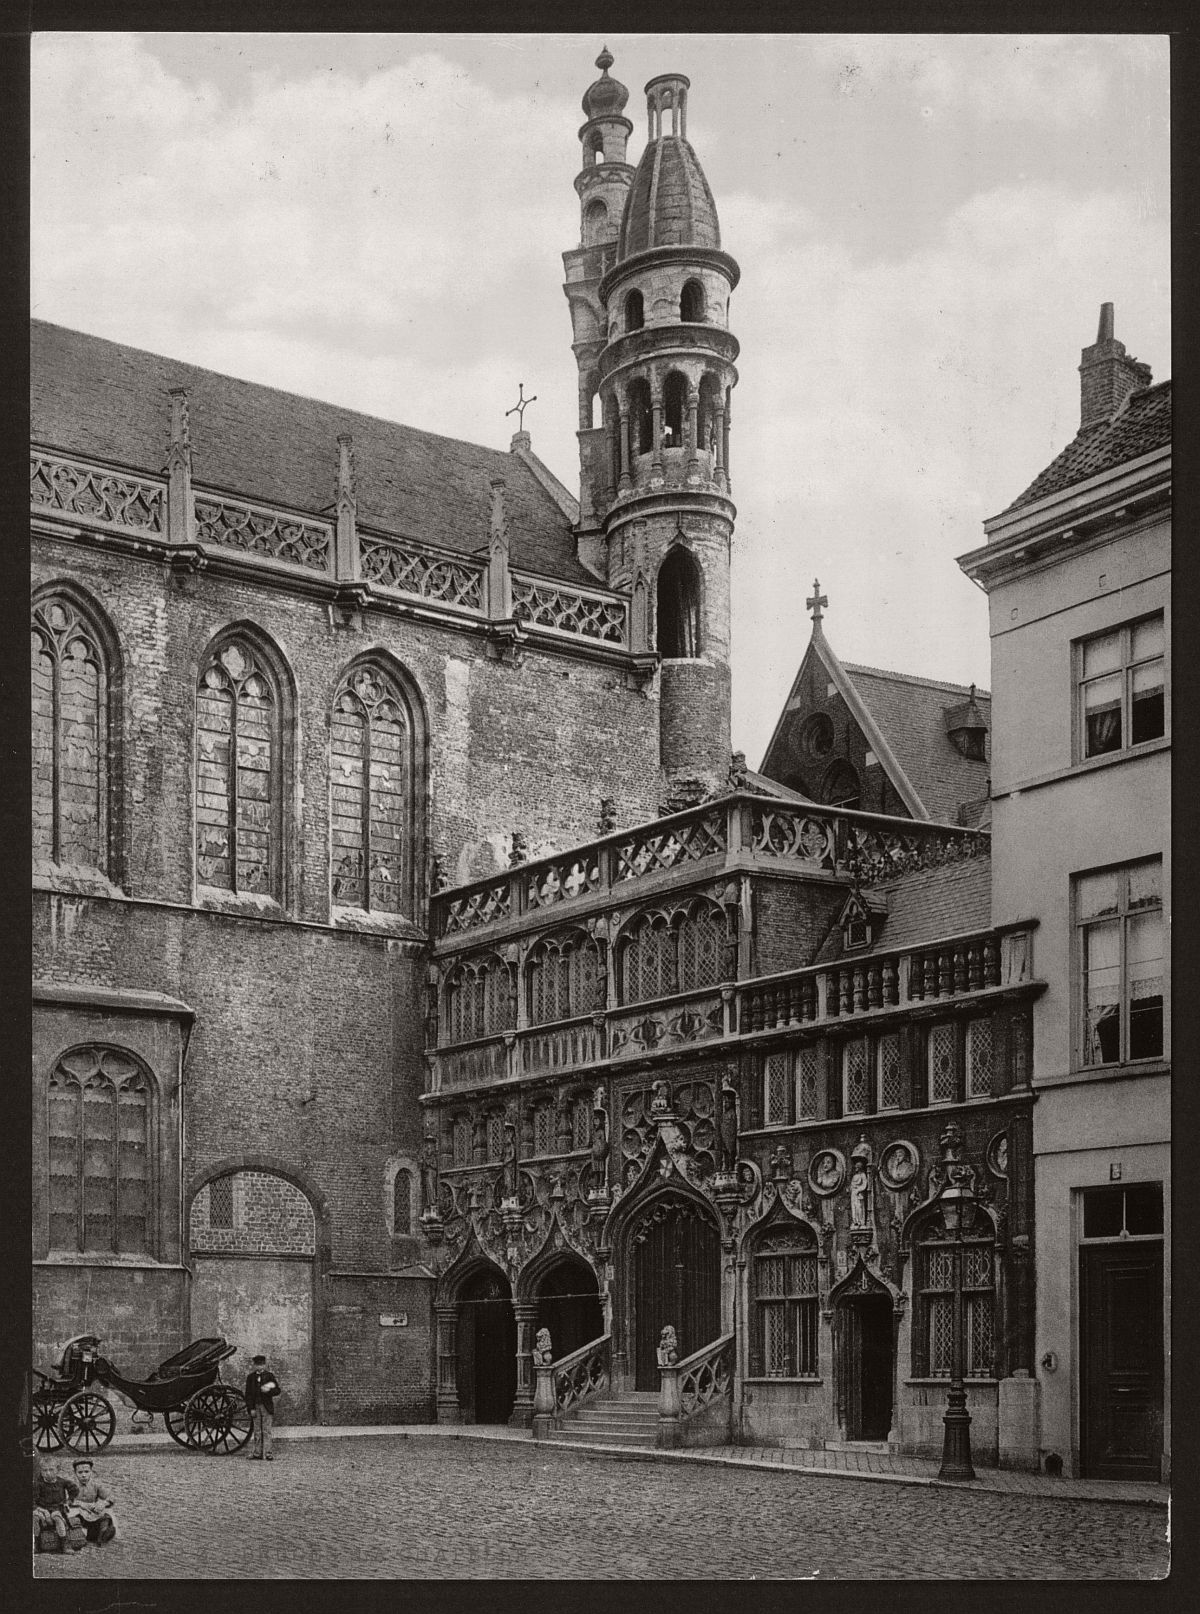 historic-bw-photos-of-bruges-belgium-in-19th-century-13